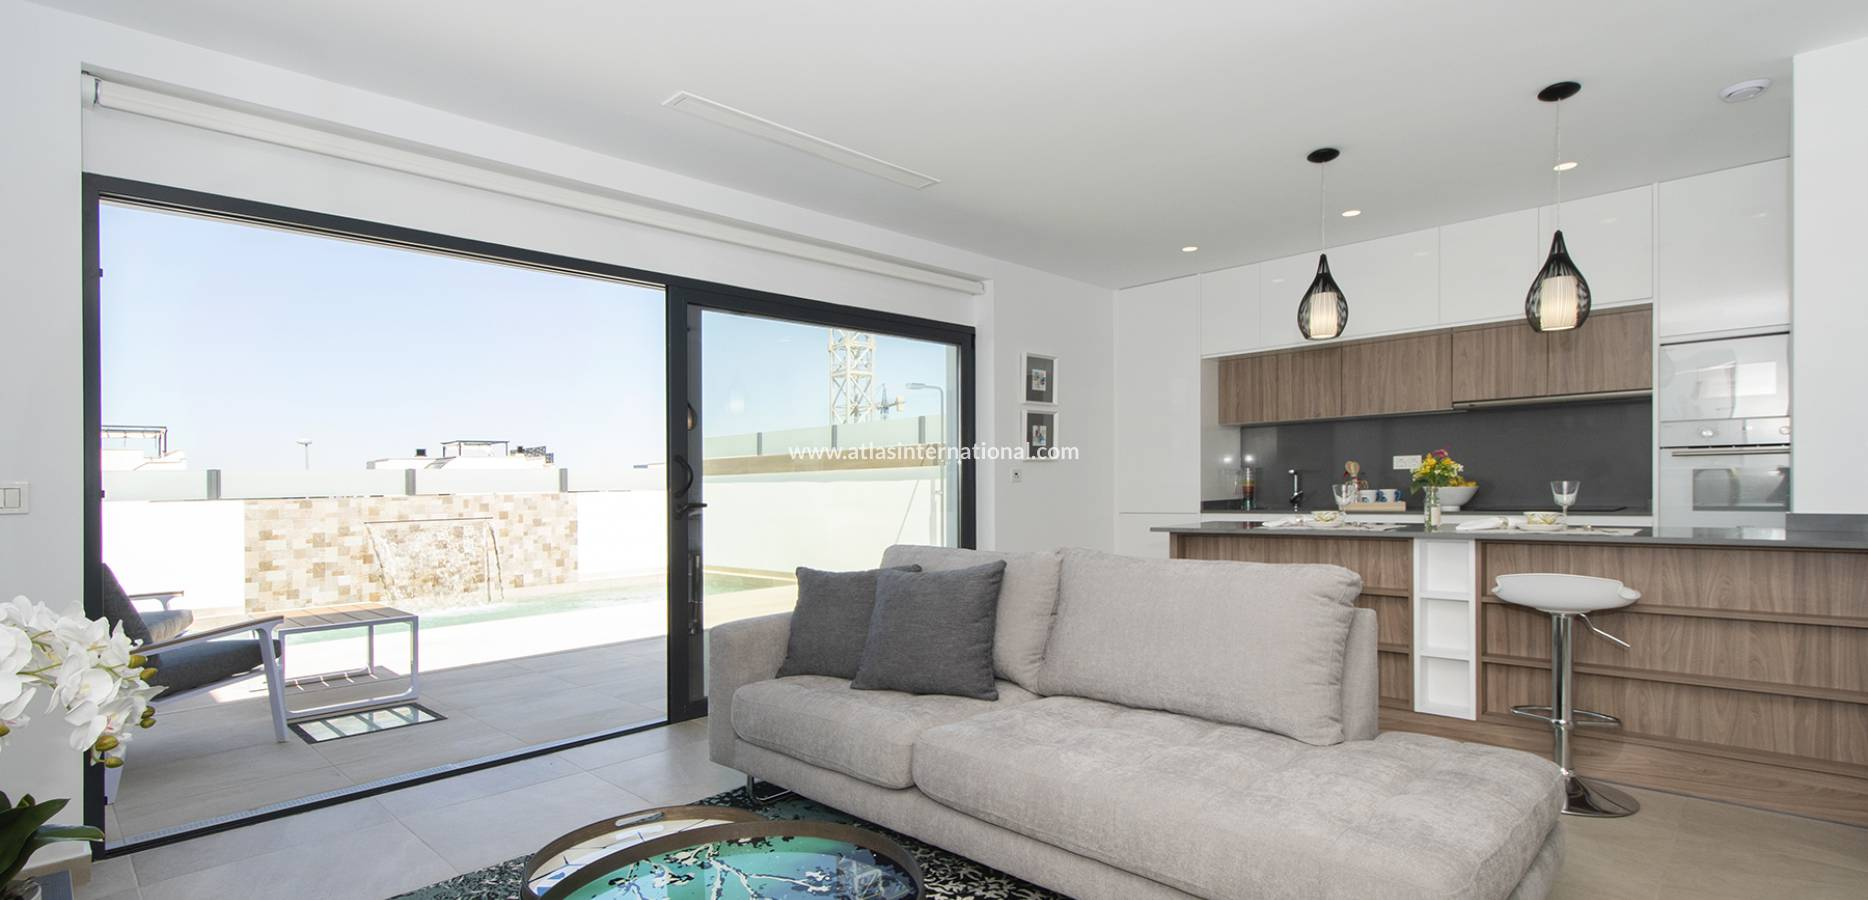 New Build - Semi-Detached Villa - Benijofar